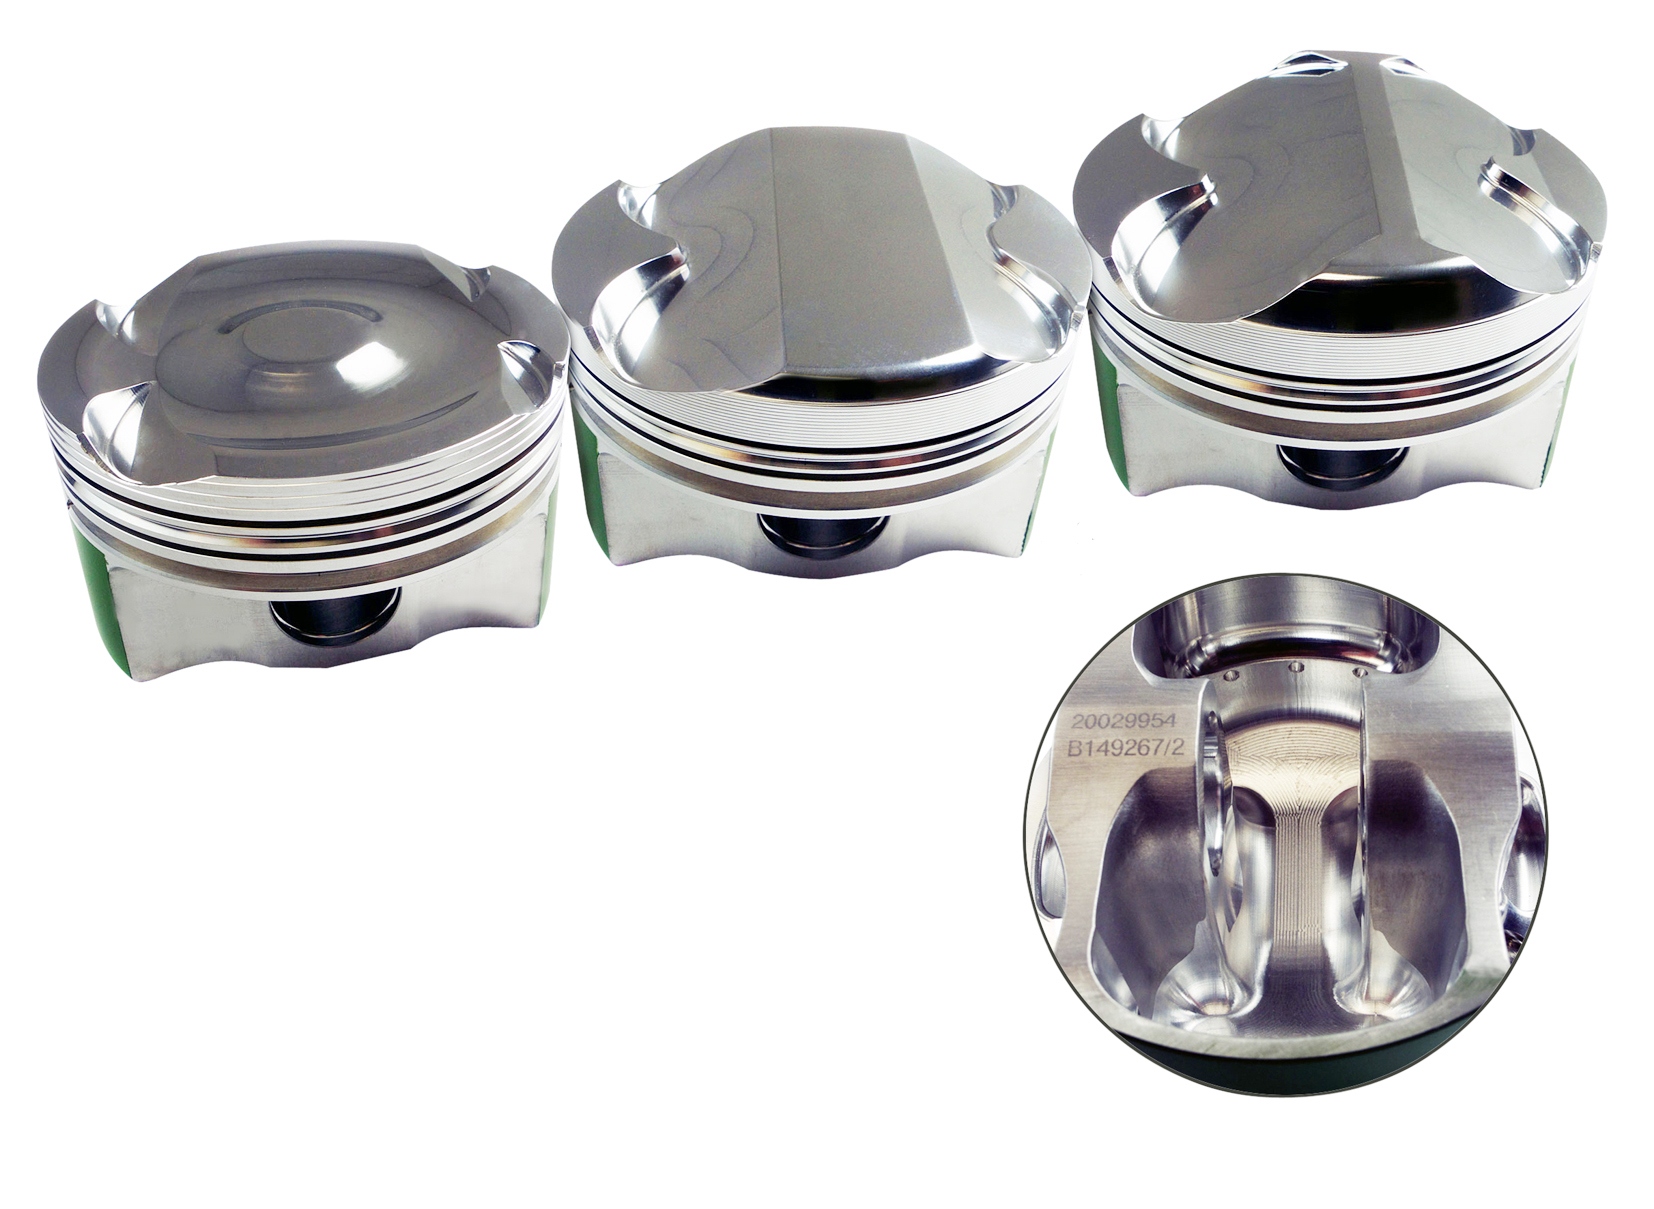 Cosworth launches the ulimate pistons for the Toyota 2ZZ-GE engined Lotus, Celica & MR2